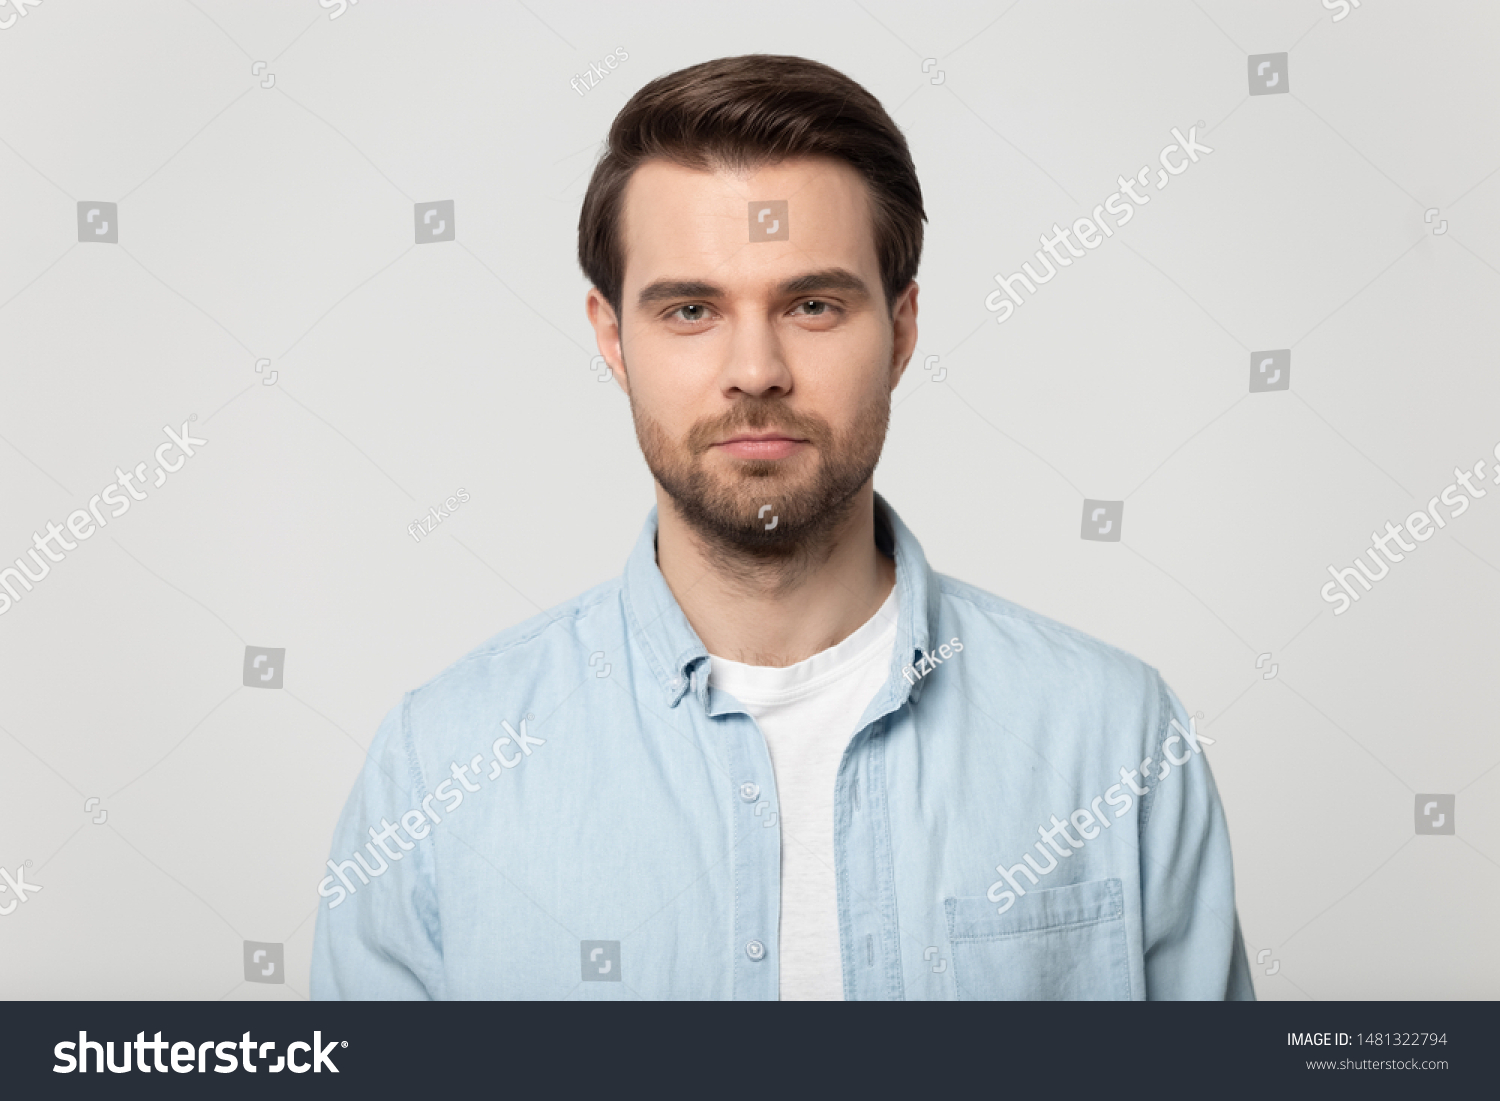 Close up head shot confident serious concentrated young man looking at camera studio portrait, isolated on grey white studio background. Thoughtful millennial guy posing for album photo. #1481322794